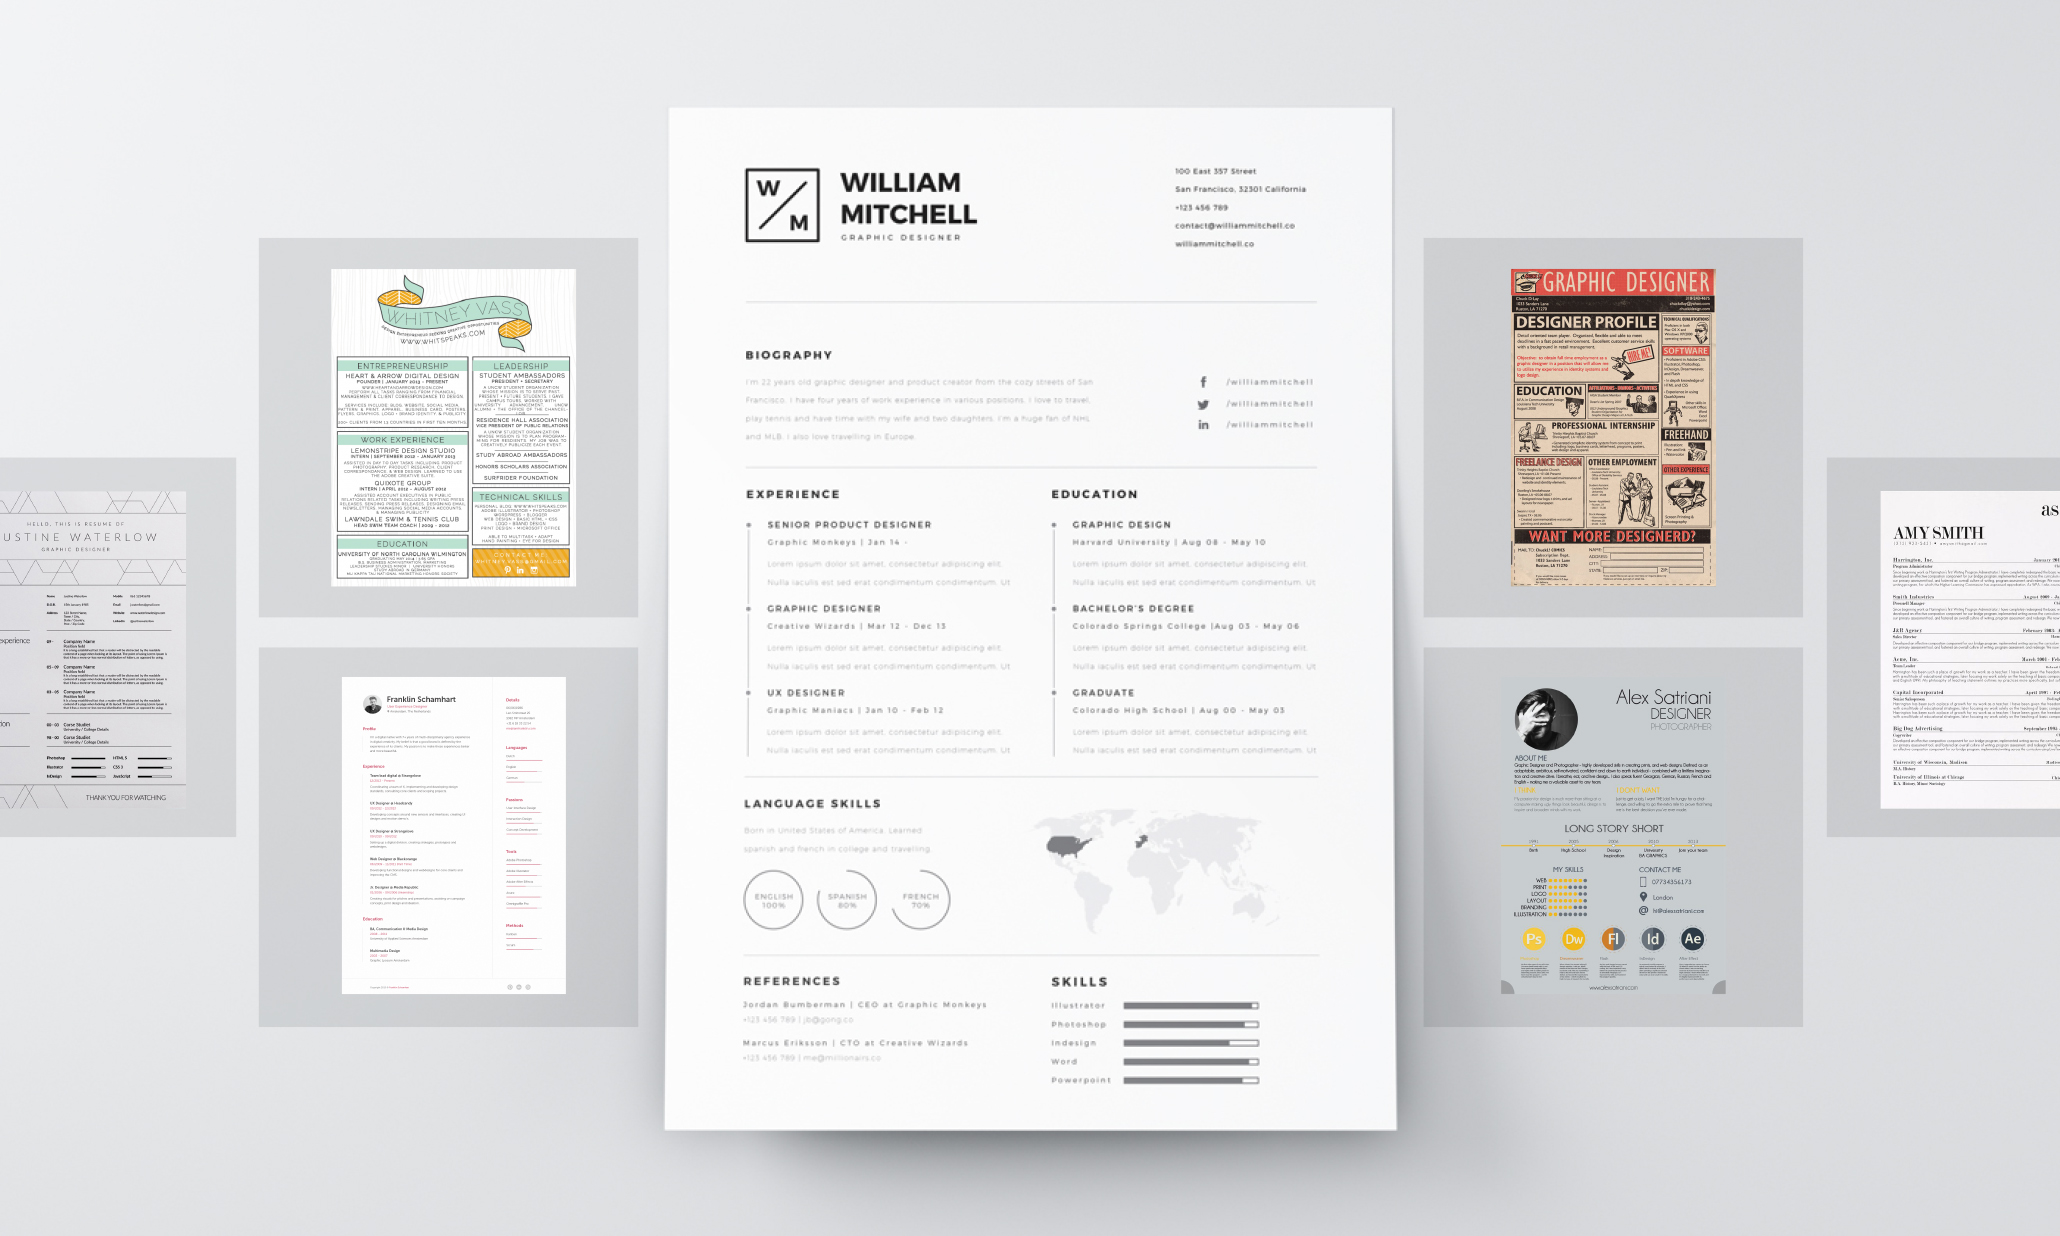 resume design principles that get you hired 99designs best font size for resumes allergy Resume Best Font Size For Resume 2020